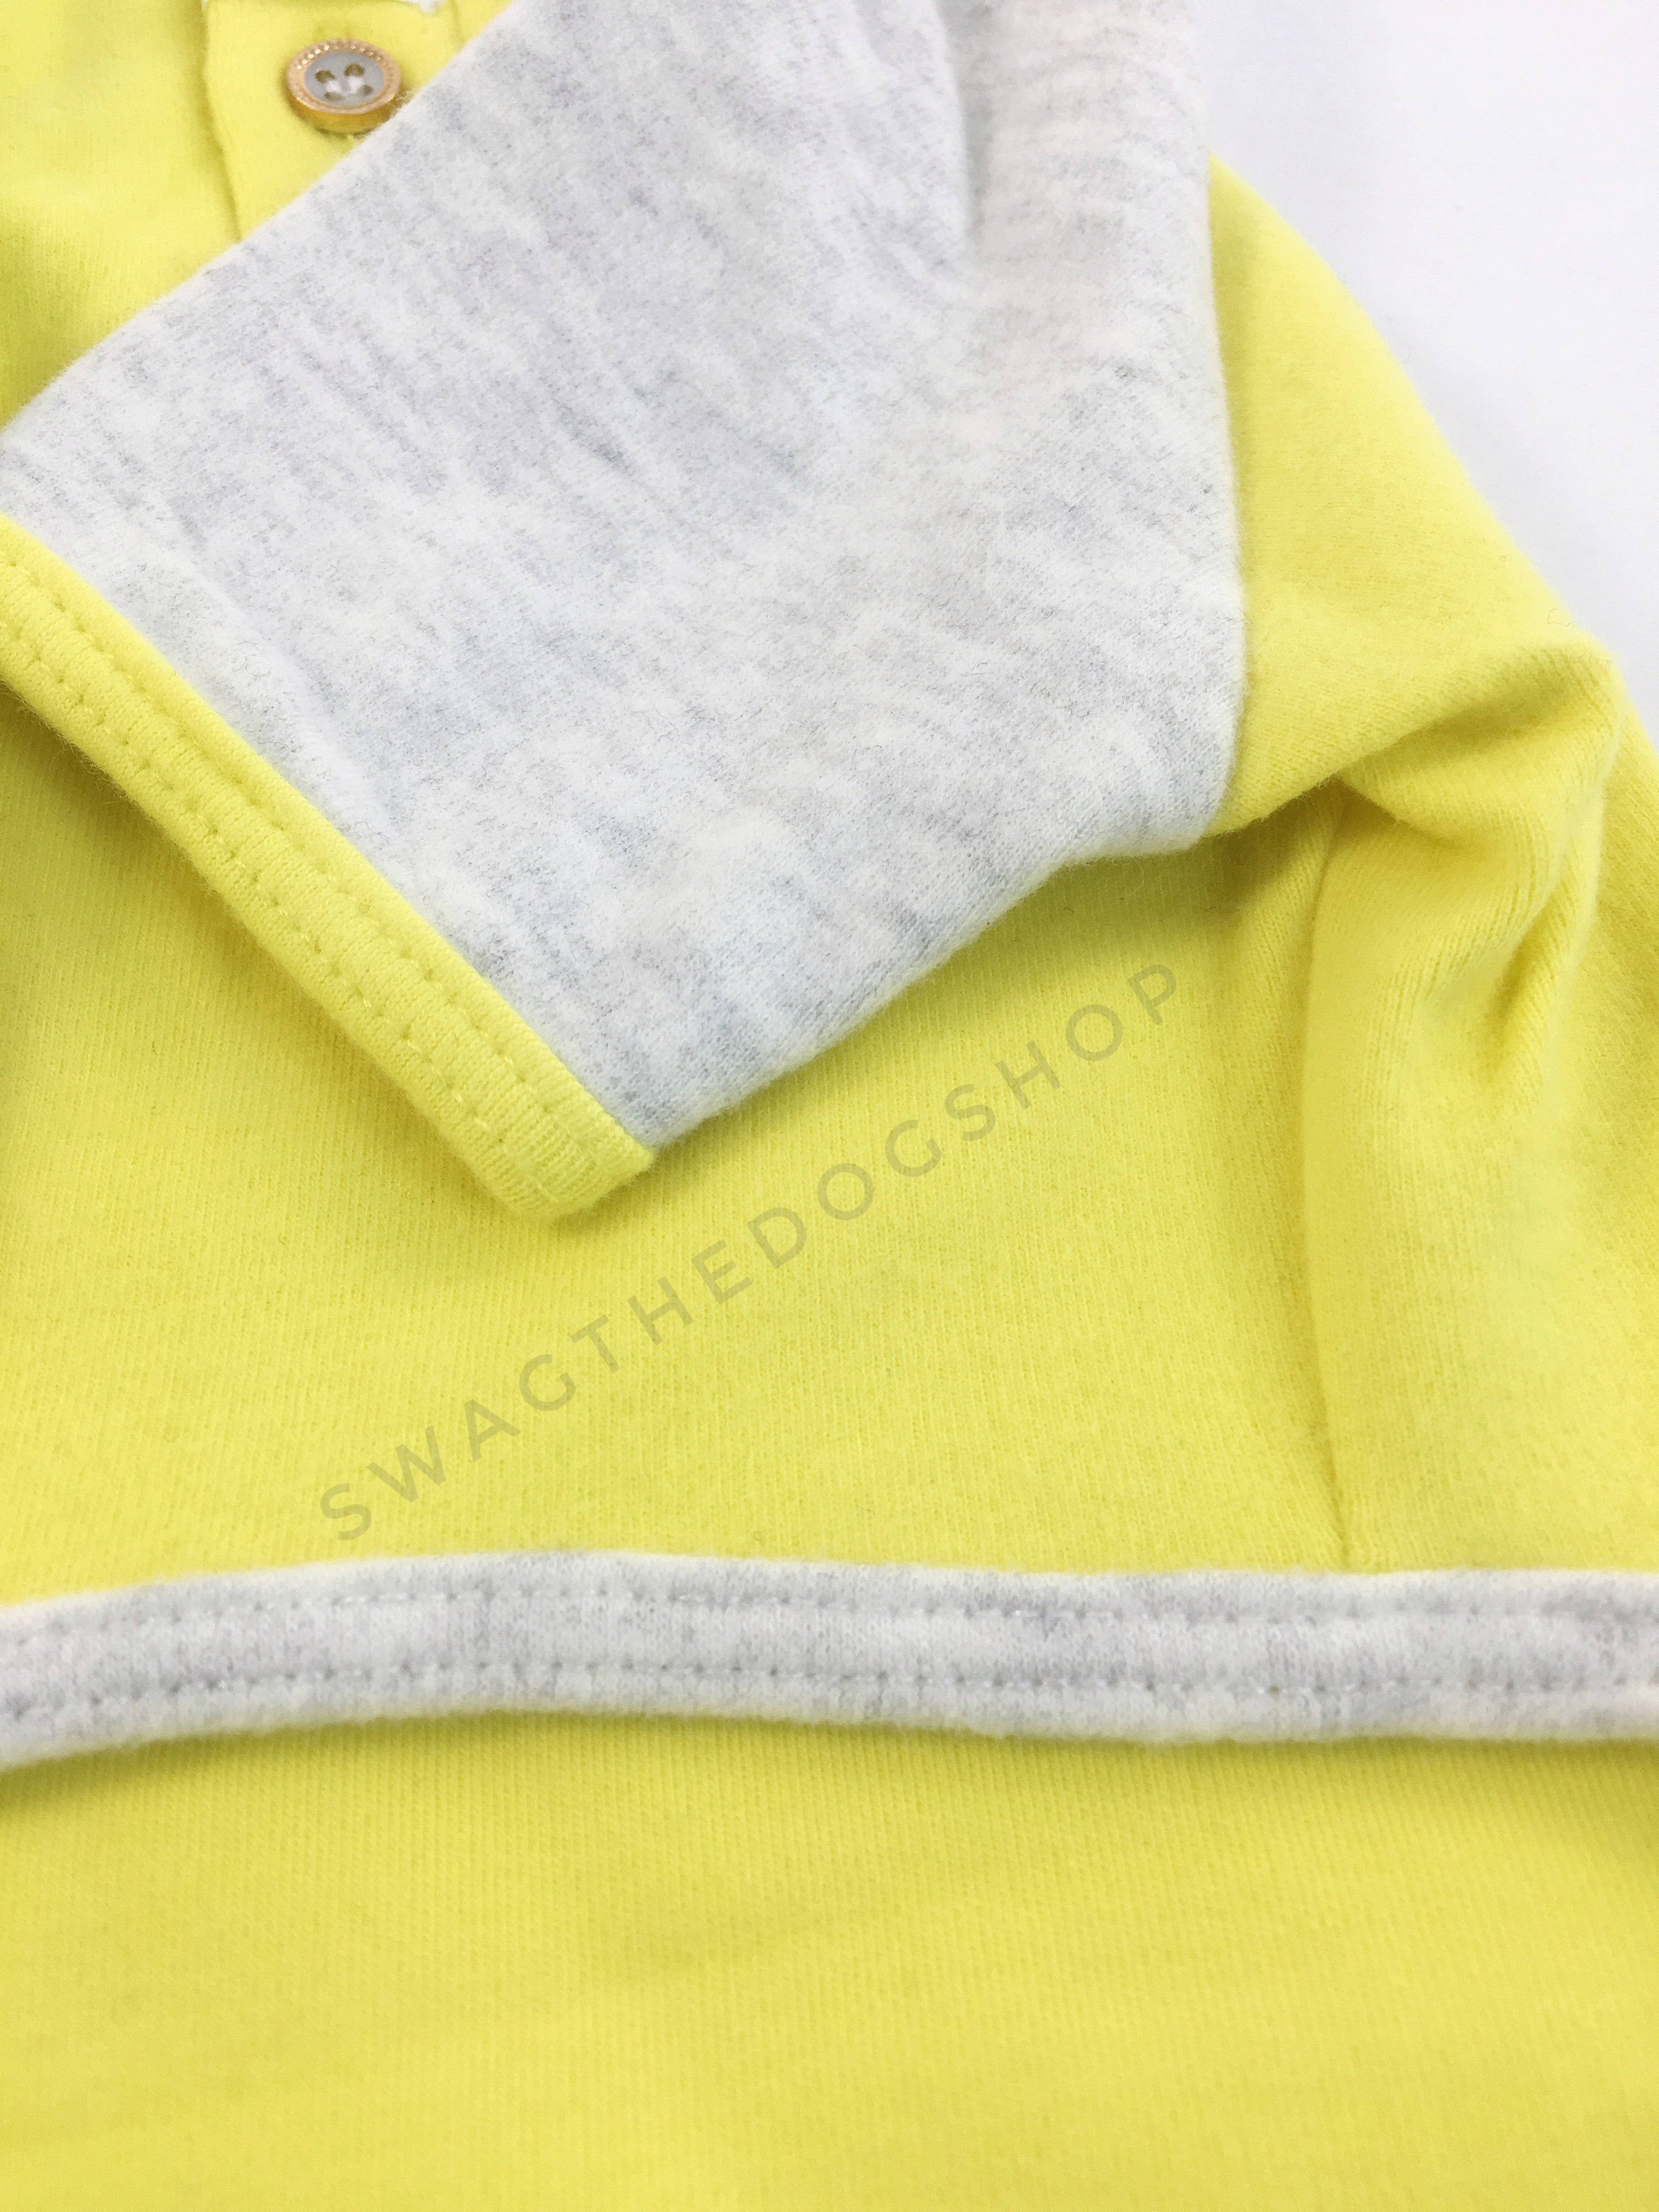 Surfside Lemon Yellow Polo Shirt - Close Up View of Sleeve. Lemon Yellow with Light Gray Sleeves Polo Shirt